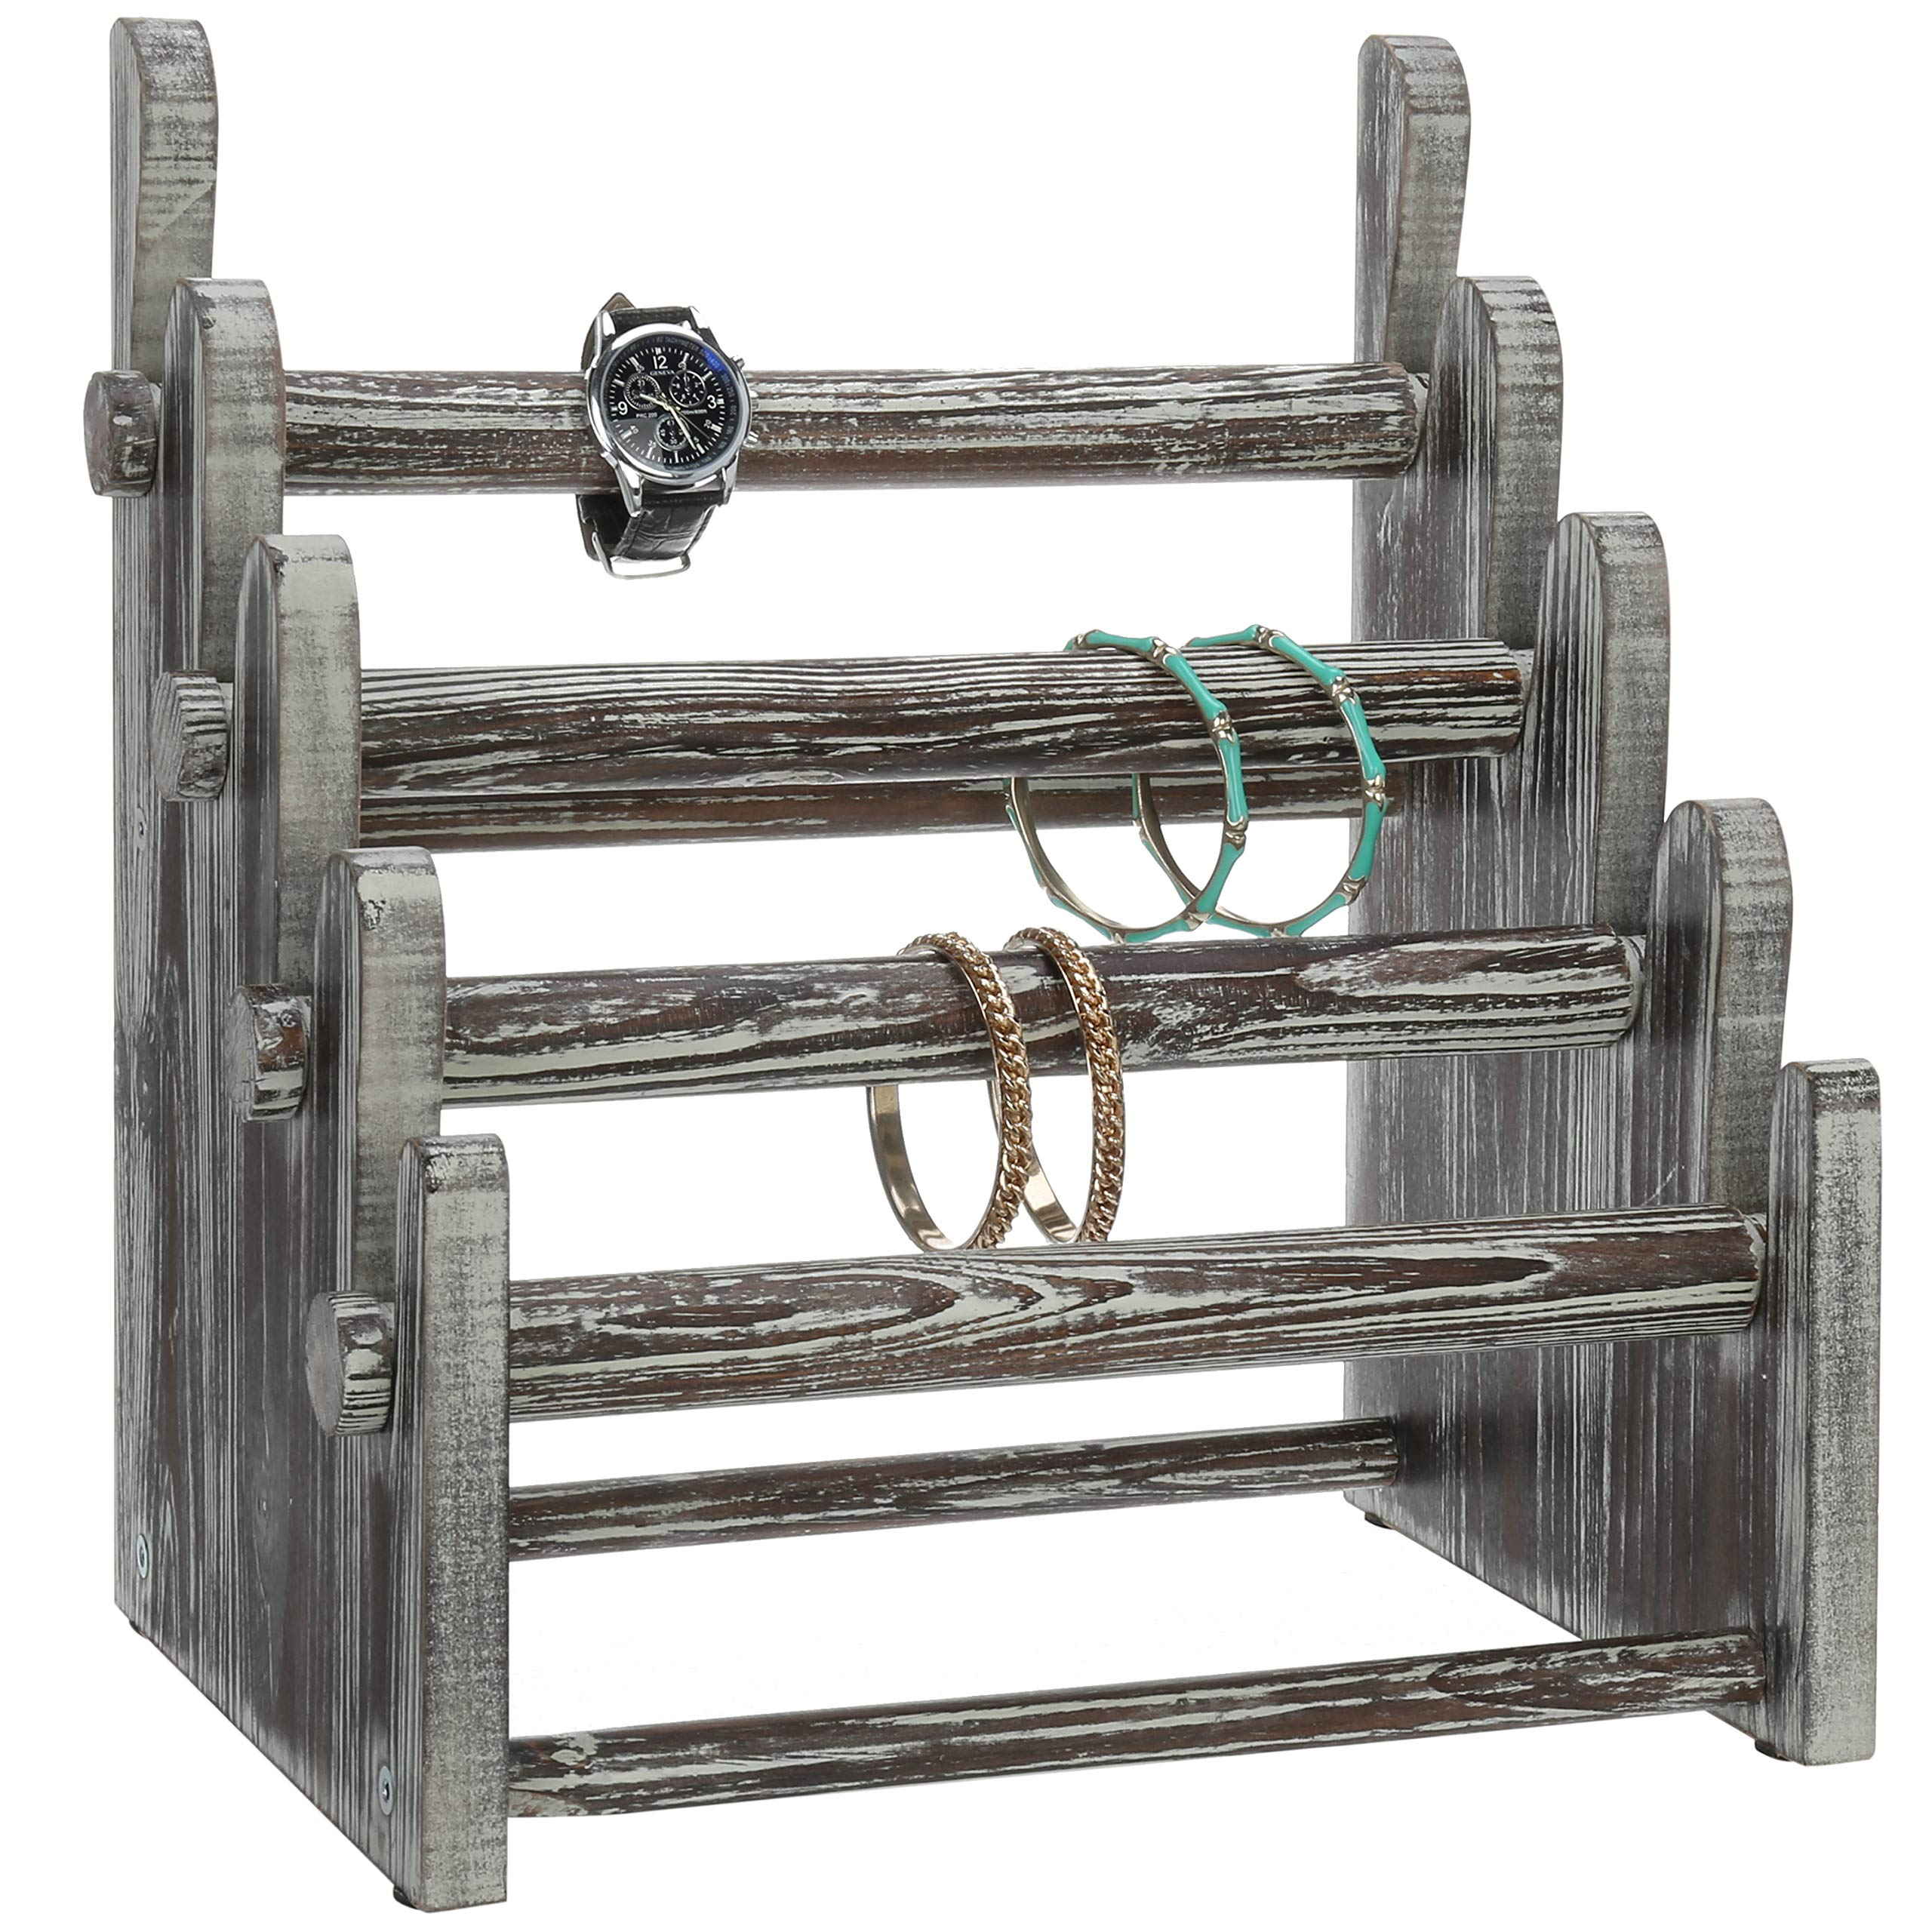 MyGift 4-Tier Rustic Wood Jewelry Bracelet Display Rack